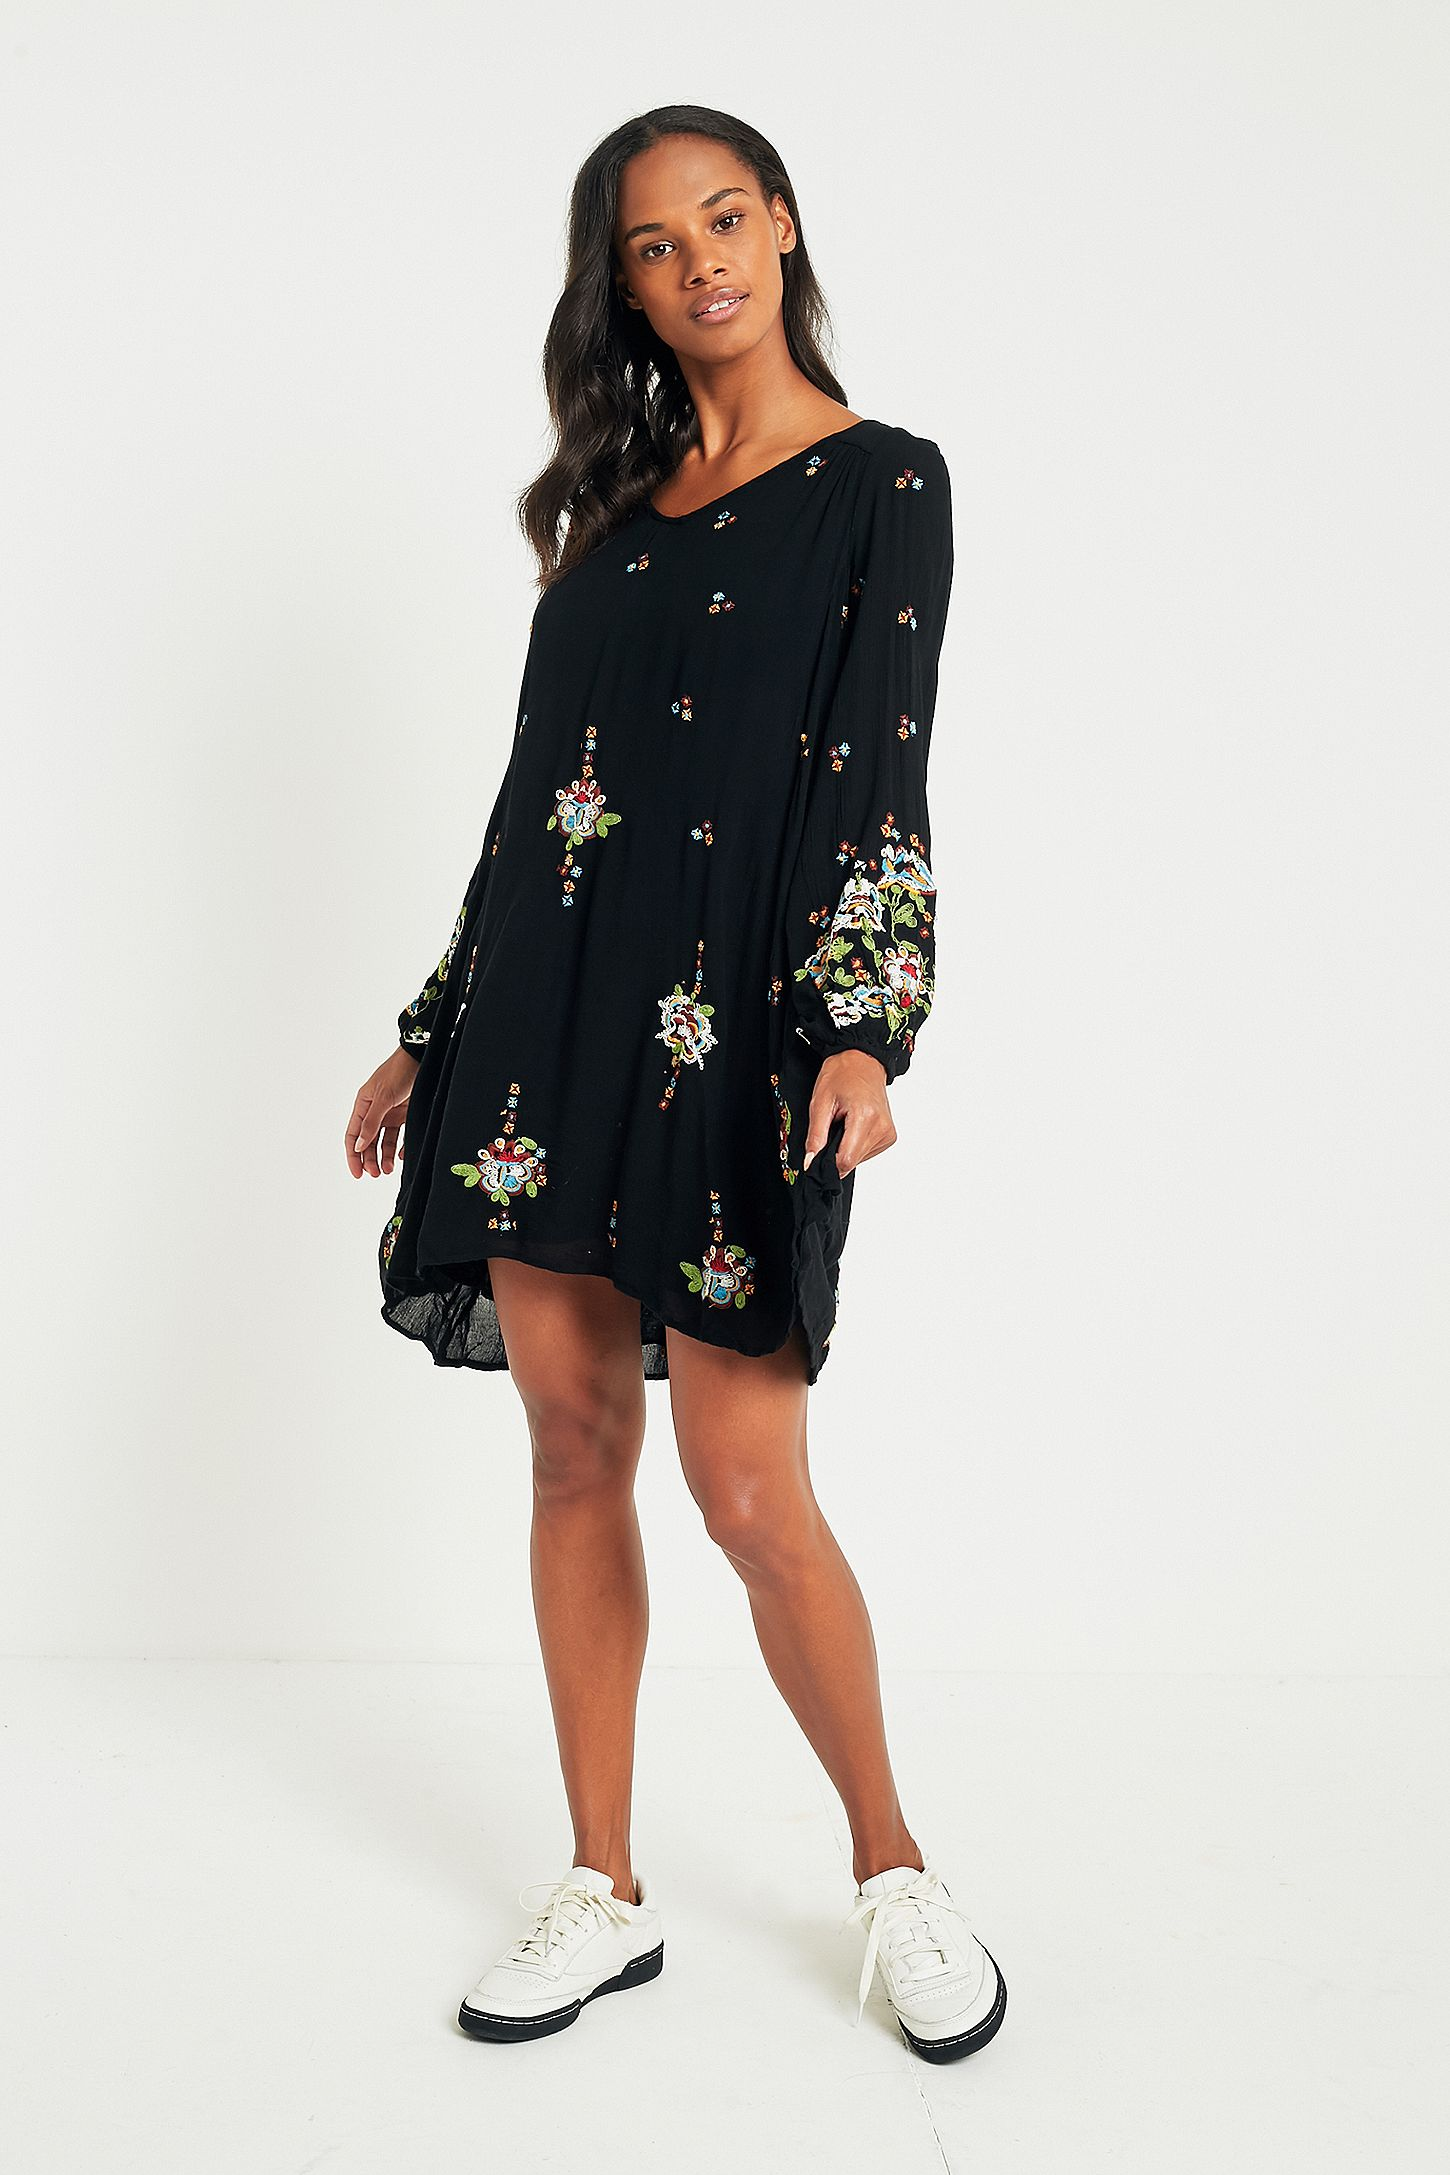 6e0a2d6660b04 Free People Oxford Floral Embroidered Mini Dress. Click on image to zoom.  Hover to zoom. Double Tap to Zoom